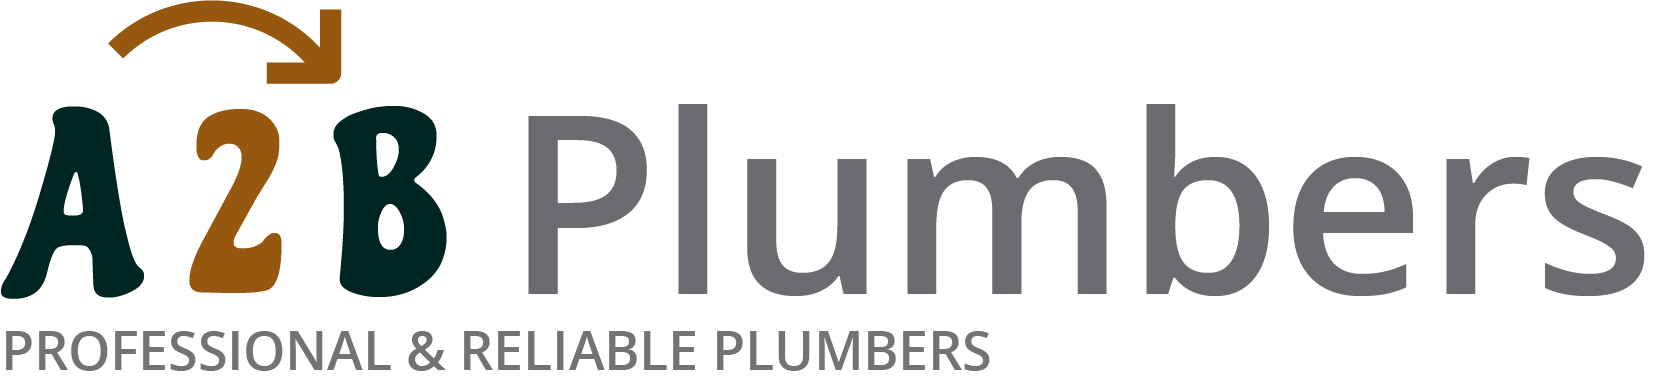 If you need a boiler installed, a radiator repaired or a leaking tap fixed, call us now - we provide services for properties in Newport Pagnell and the local area.